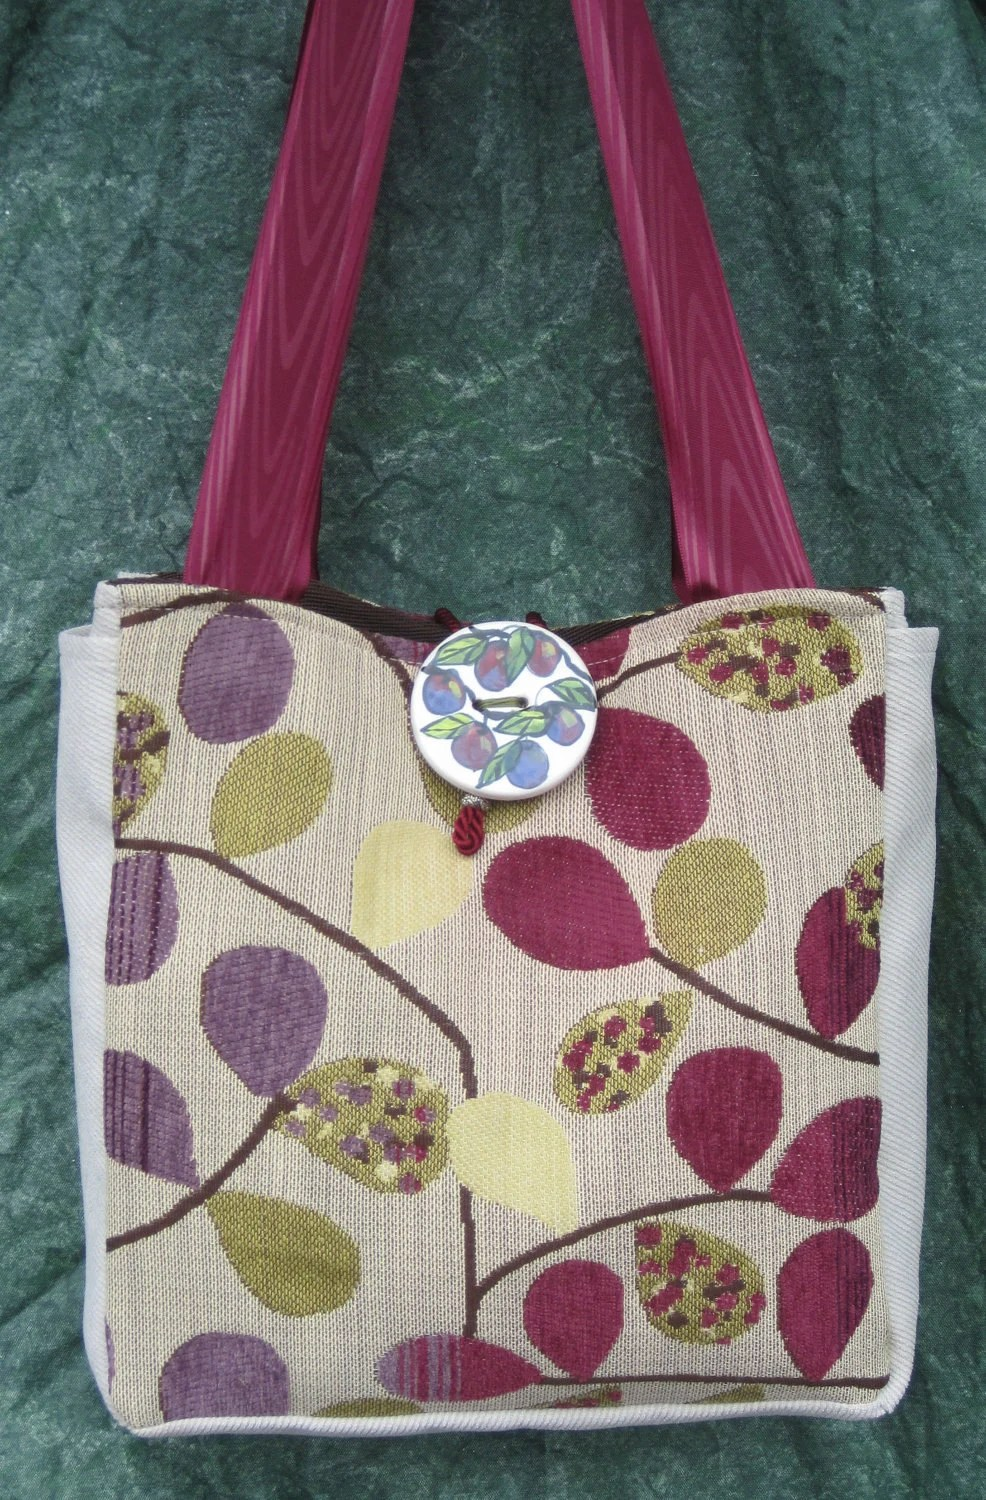 Tote Plum Dandy w/ Handcrafted Embellishment